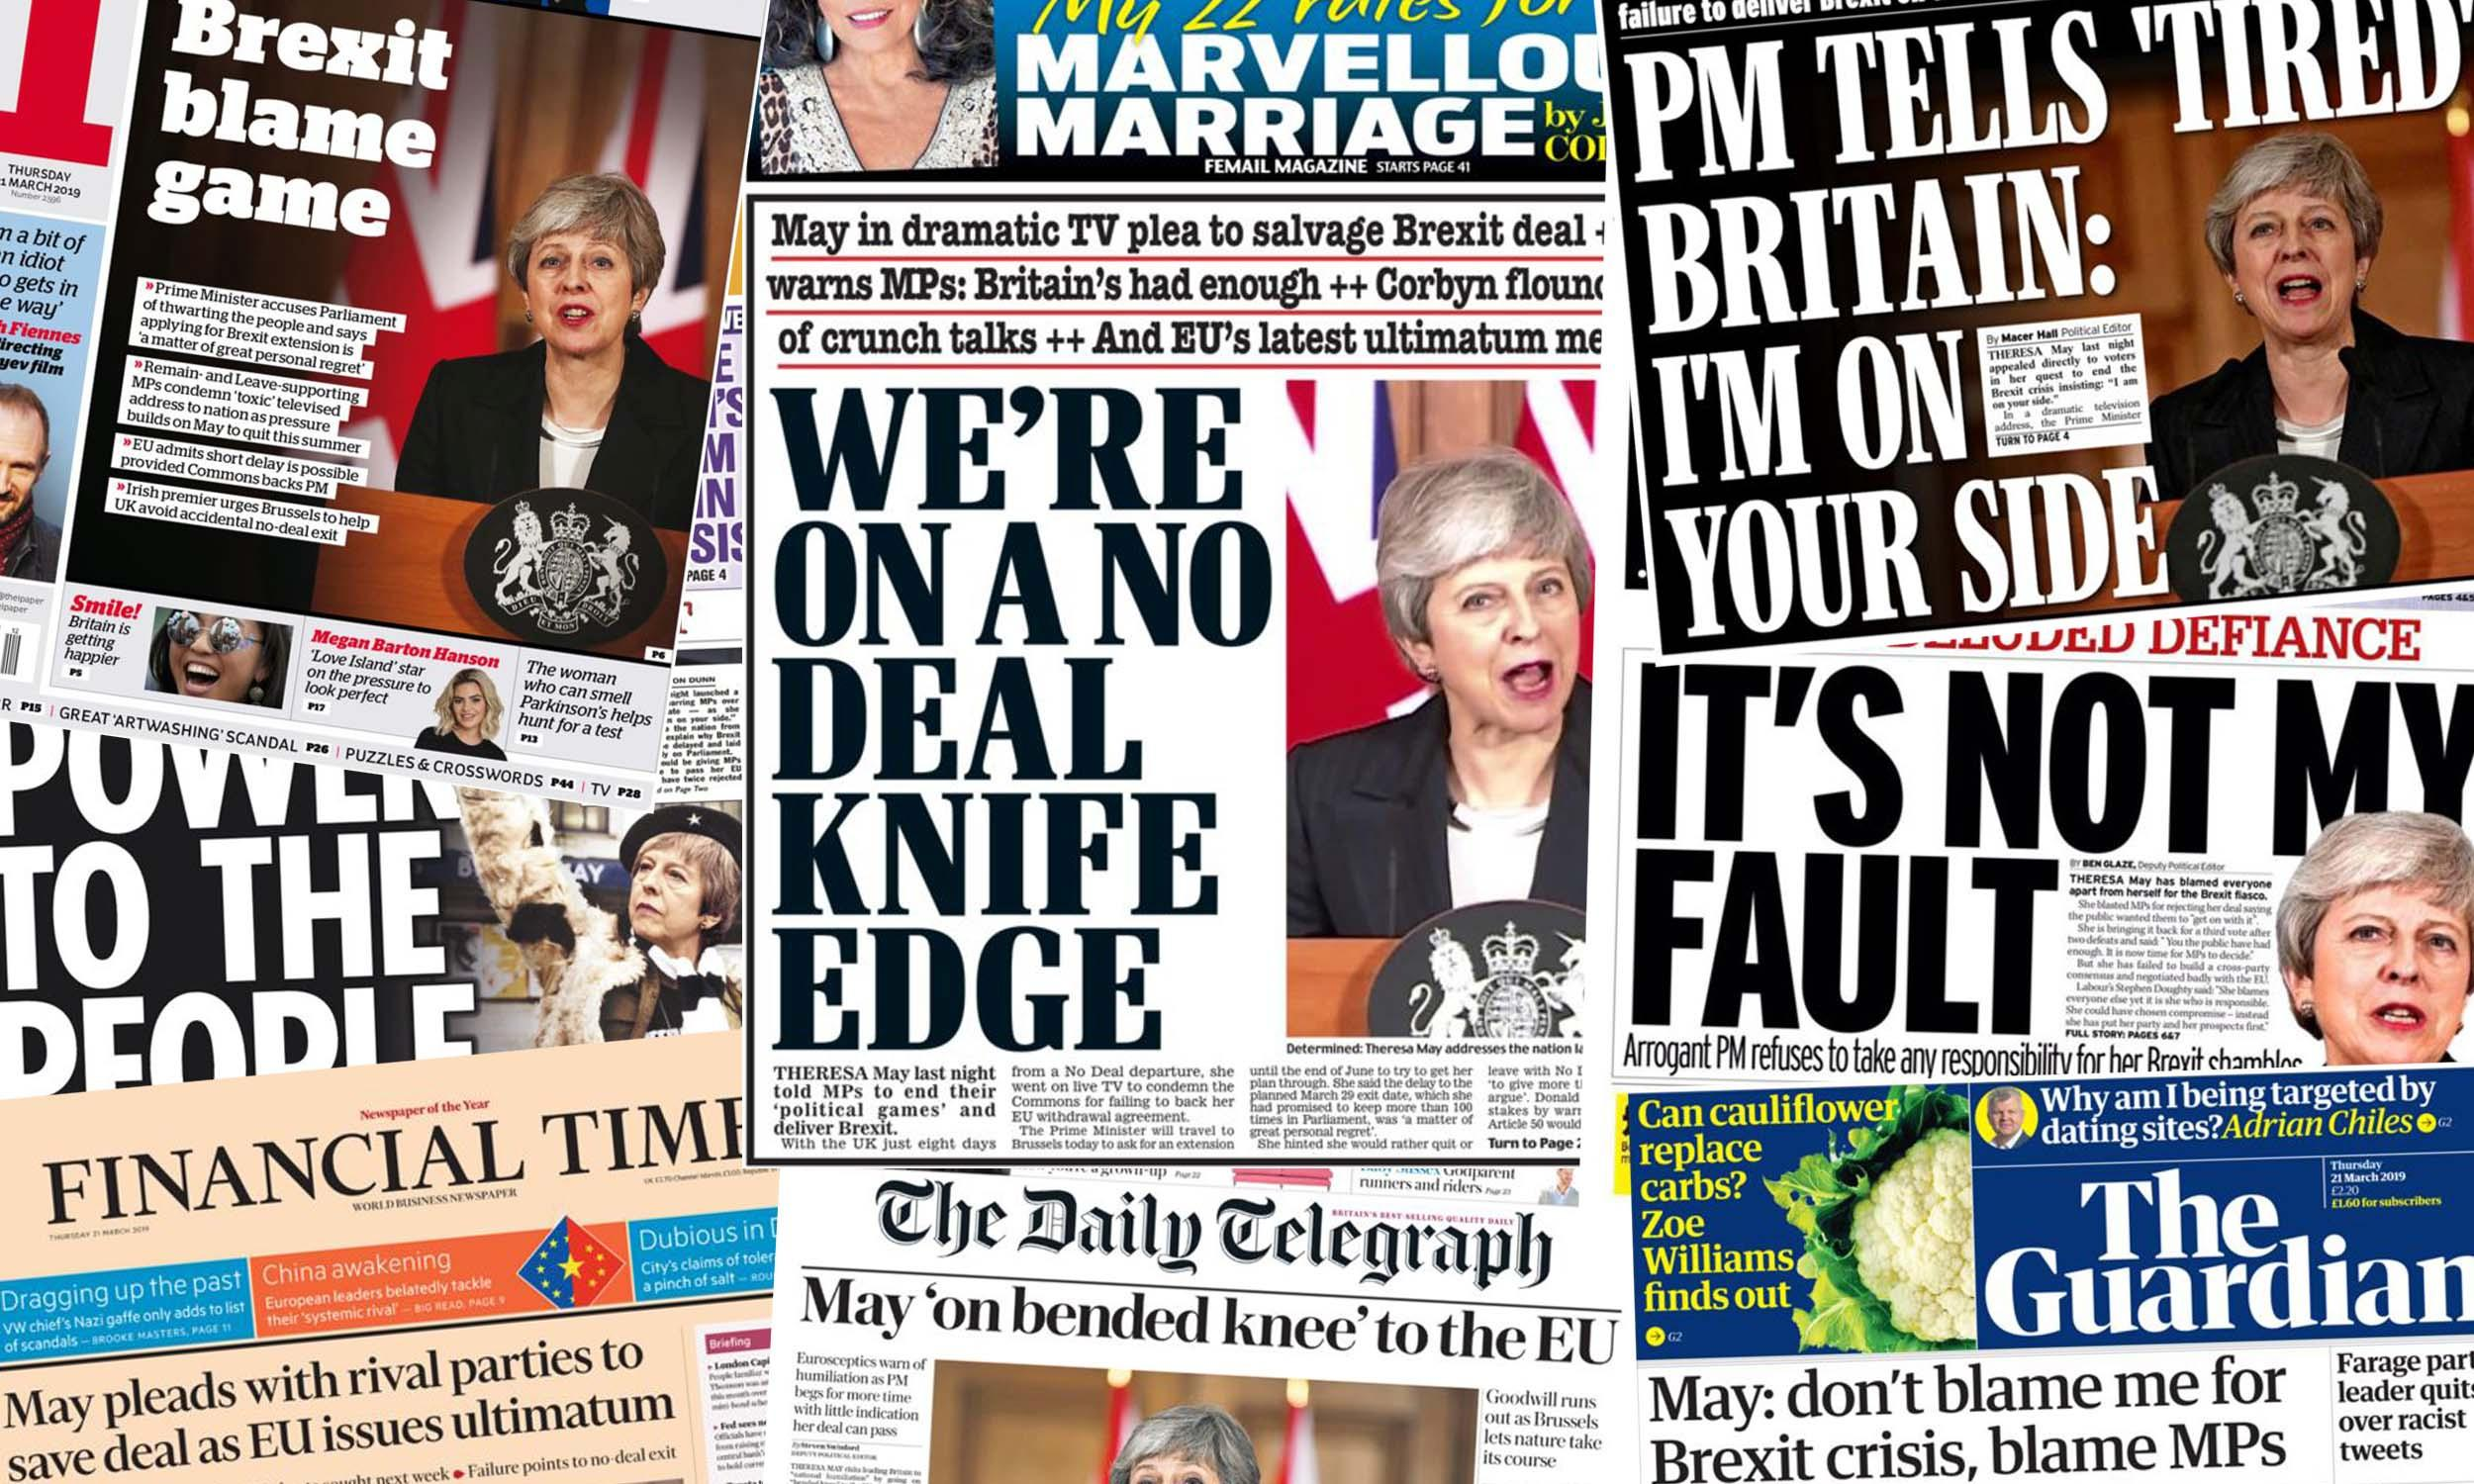 'It's not my fault' – what the papers say as May blames MPs over Brexit